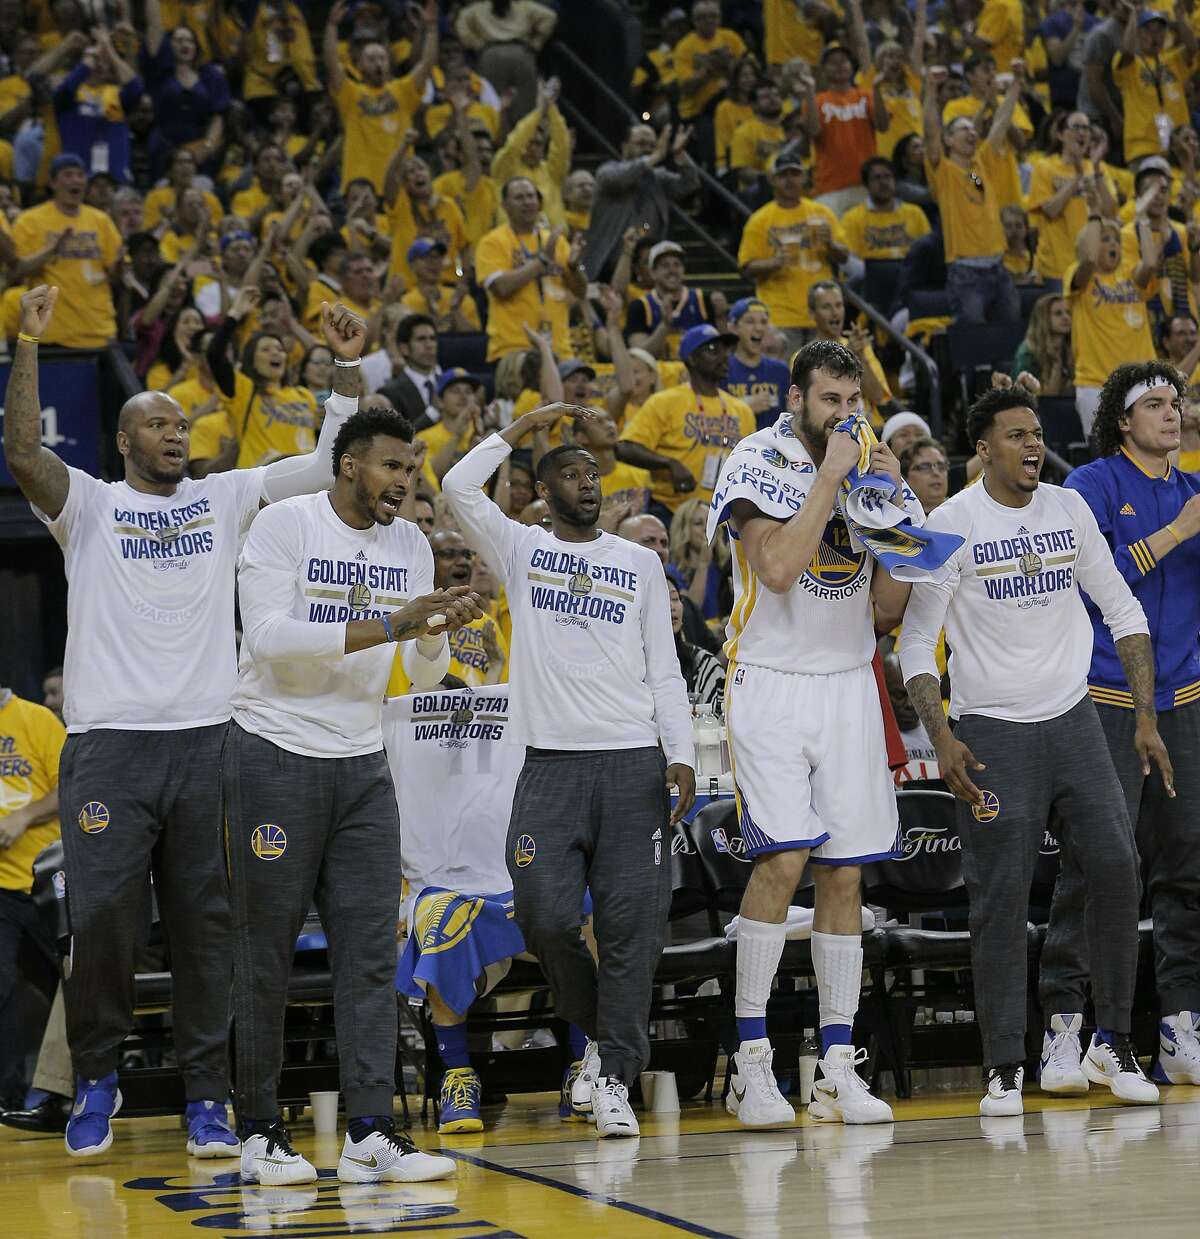 The Golden State Warriors' bench reacts in the first quarter during Game 2 of the NBA Finals at Oracle Arena on Sunday, June 5, 2016 in Oakland, Calif.